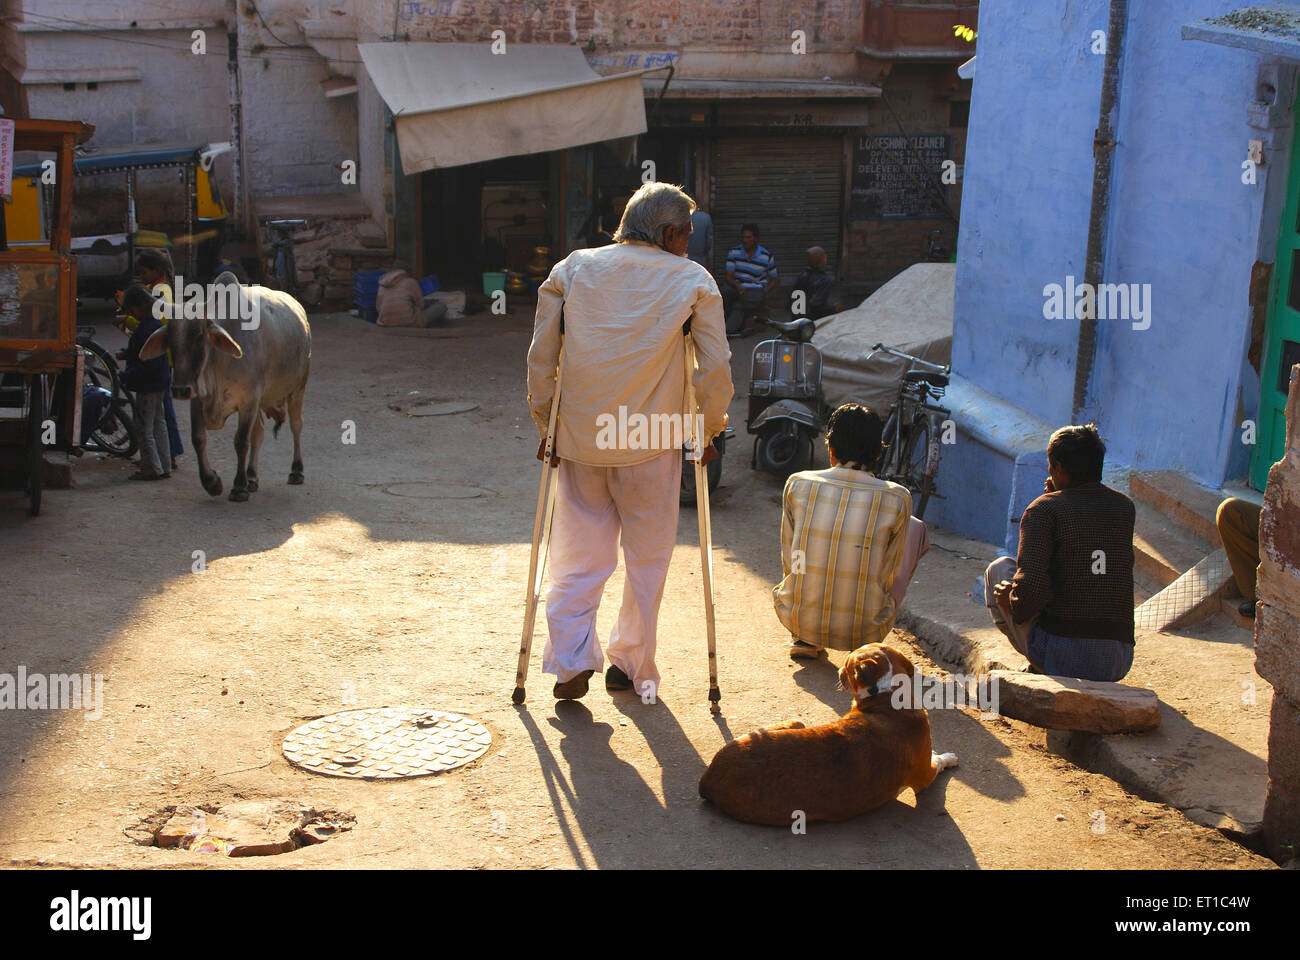 Disabled man walking with sticks ; Jodhpur ; Rajasthan ; India - Stock Image